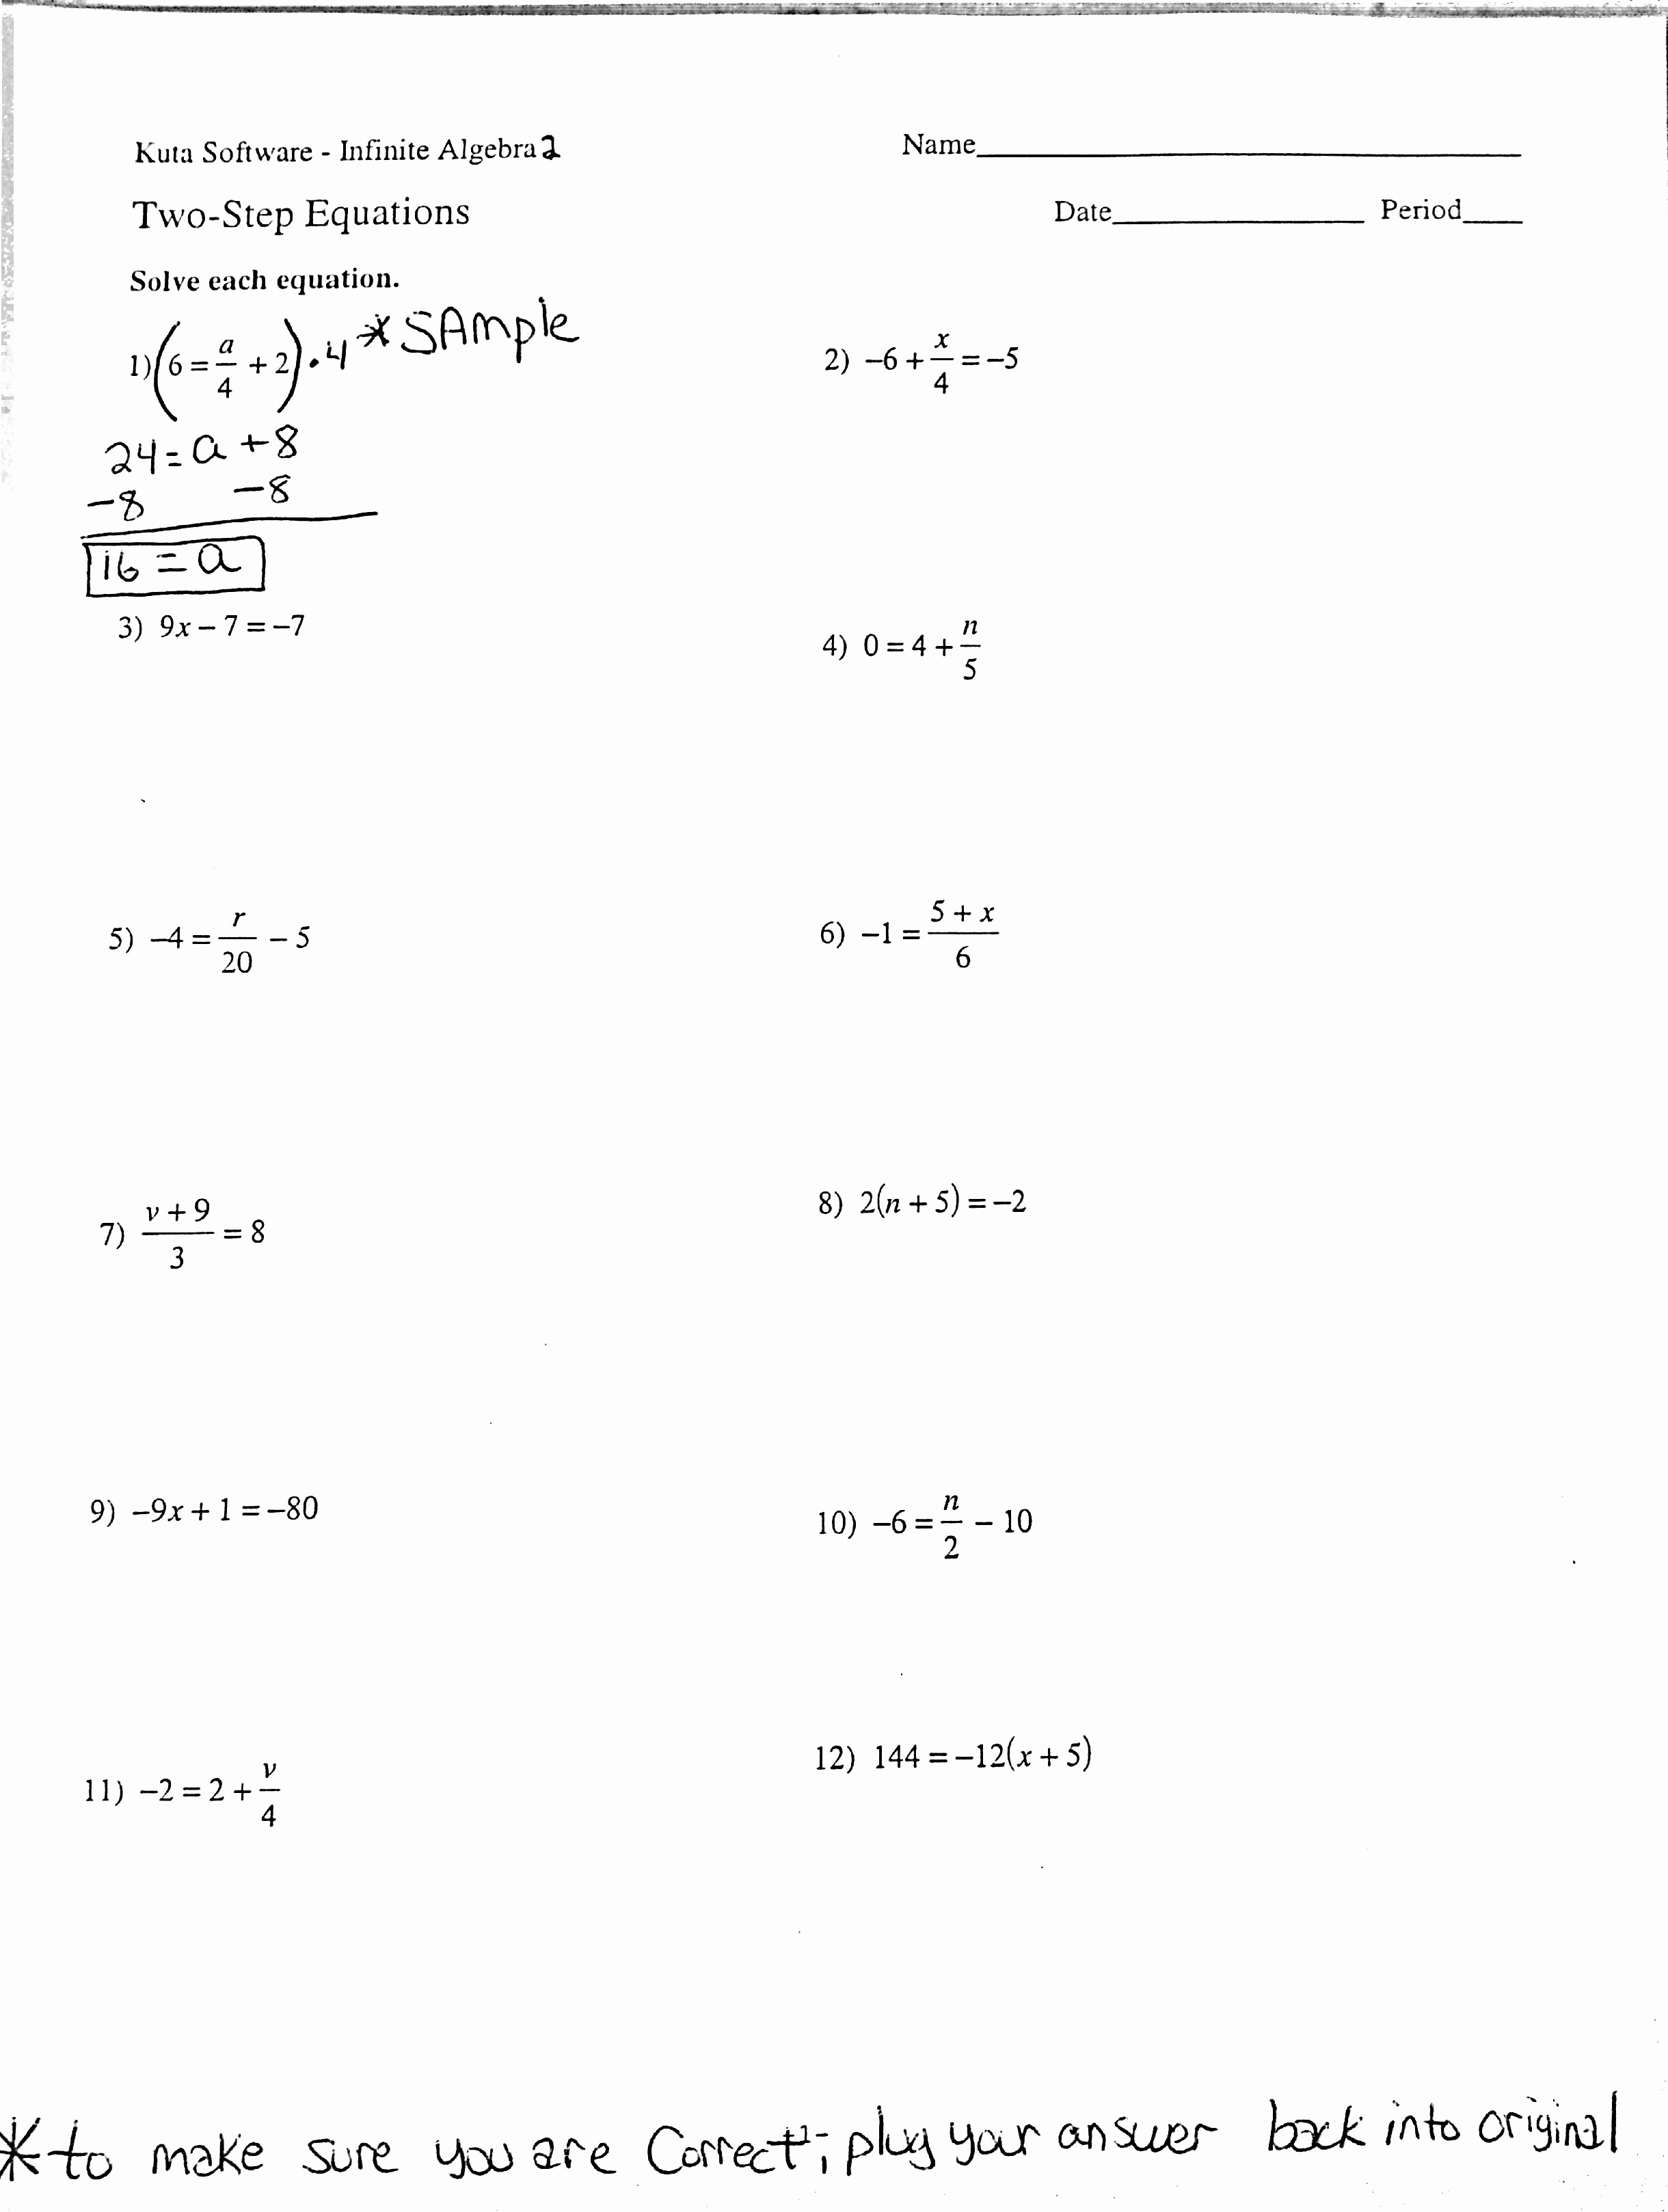 Solving Two Step Equations Worksheet Answers